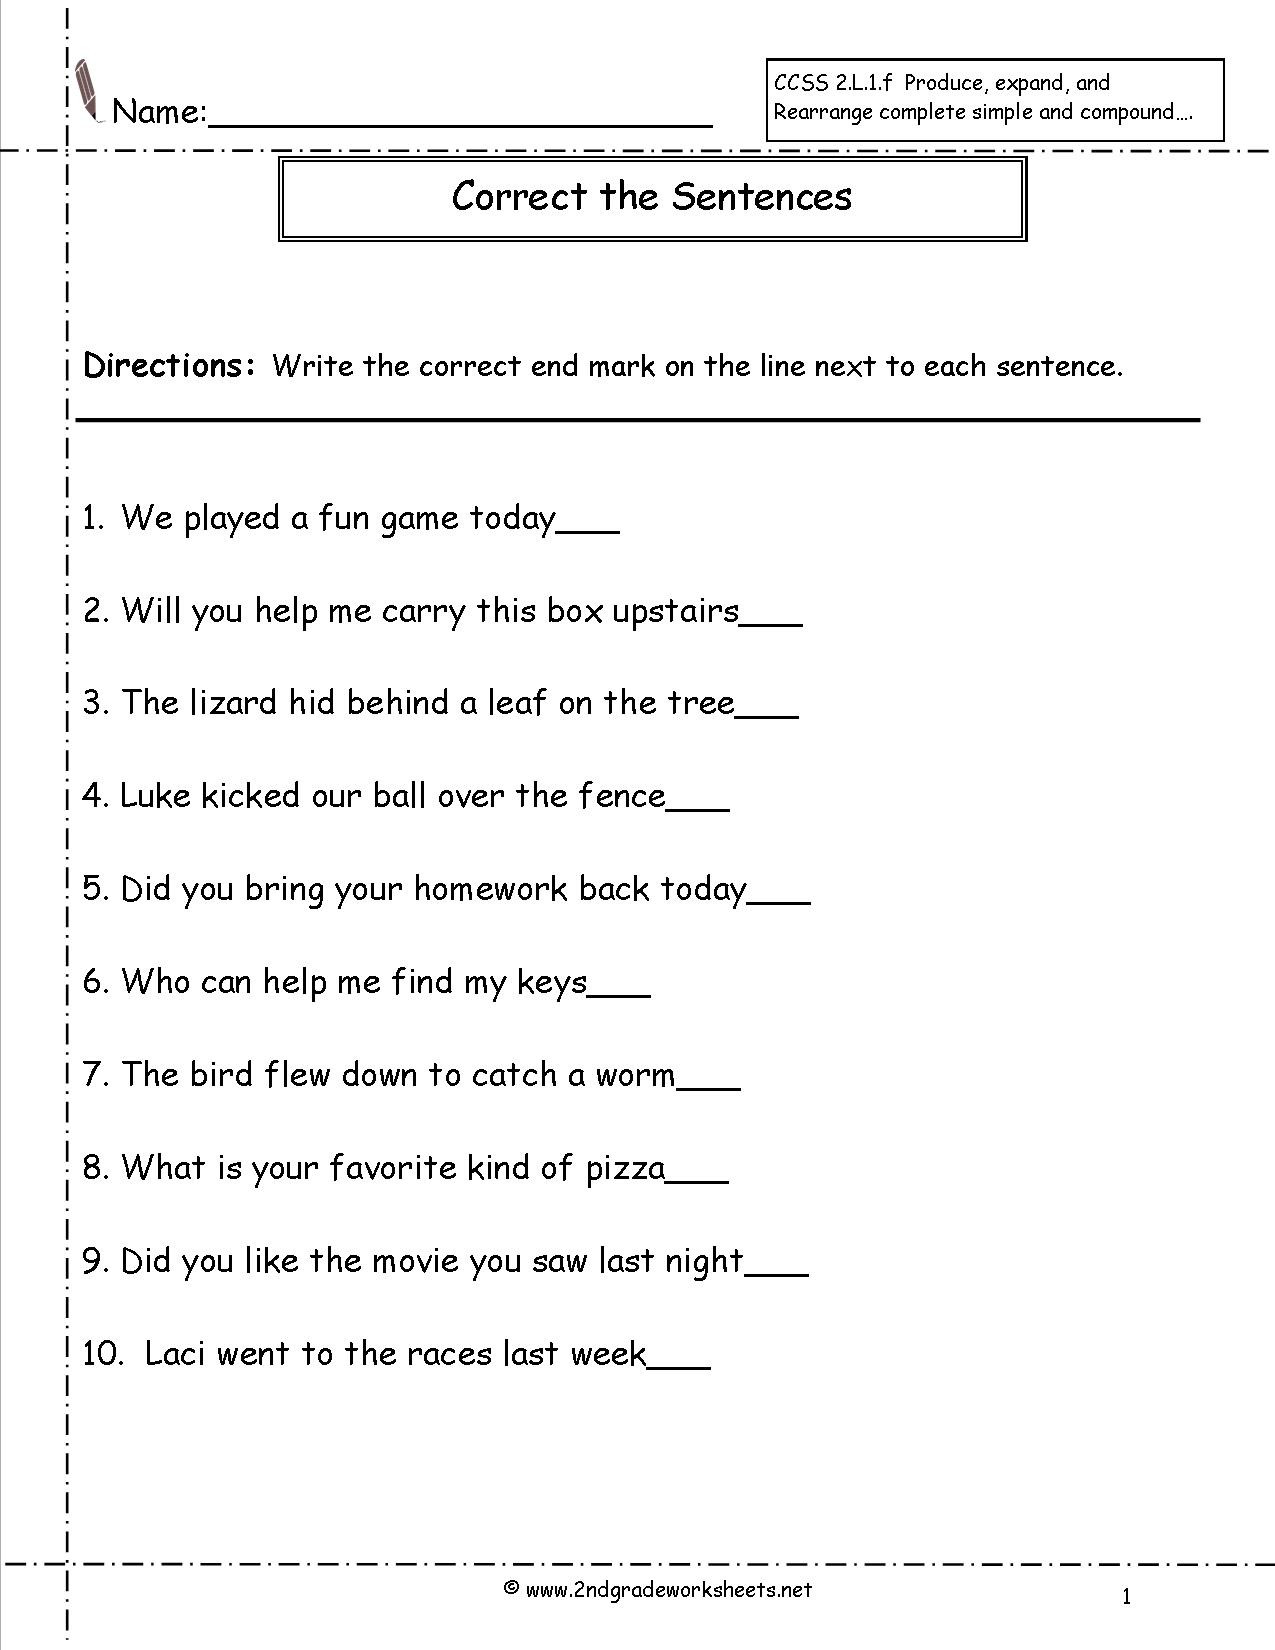 Complex Sentence Worksheets 4th Grade Sentence Correction Worksheets 6th Grade